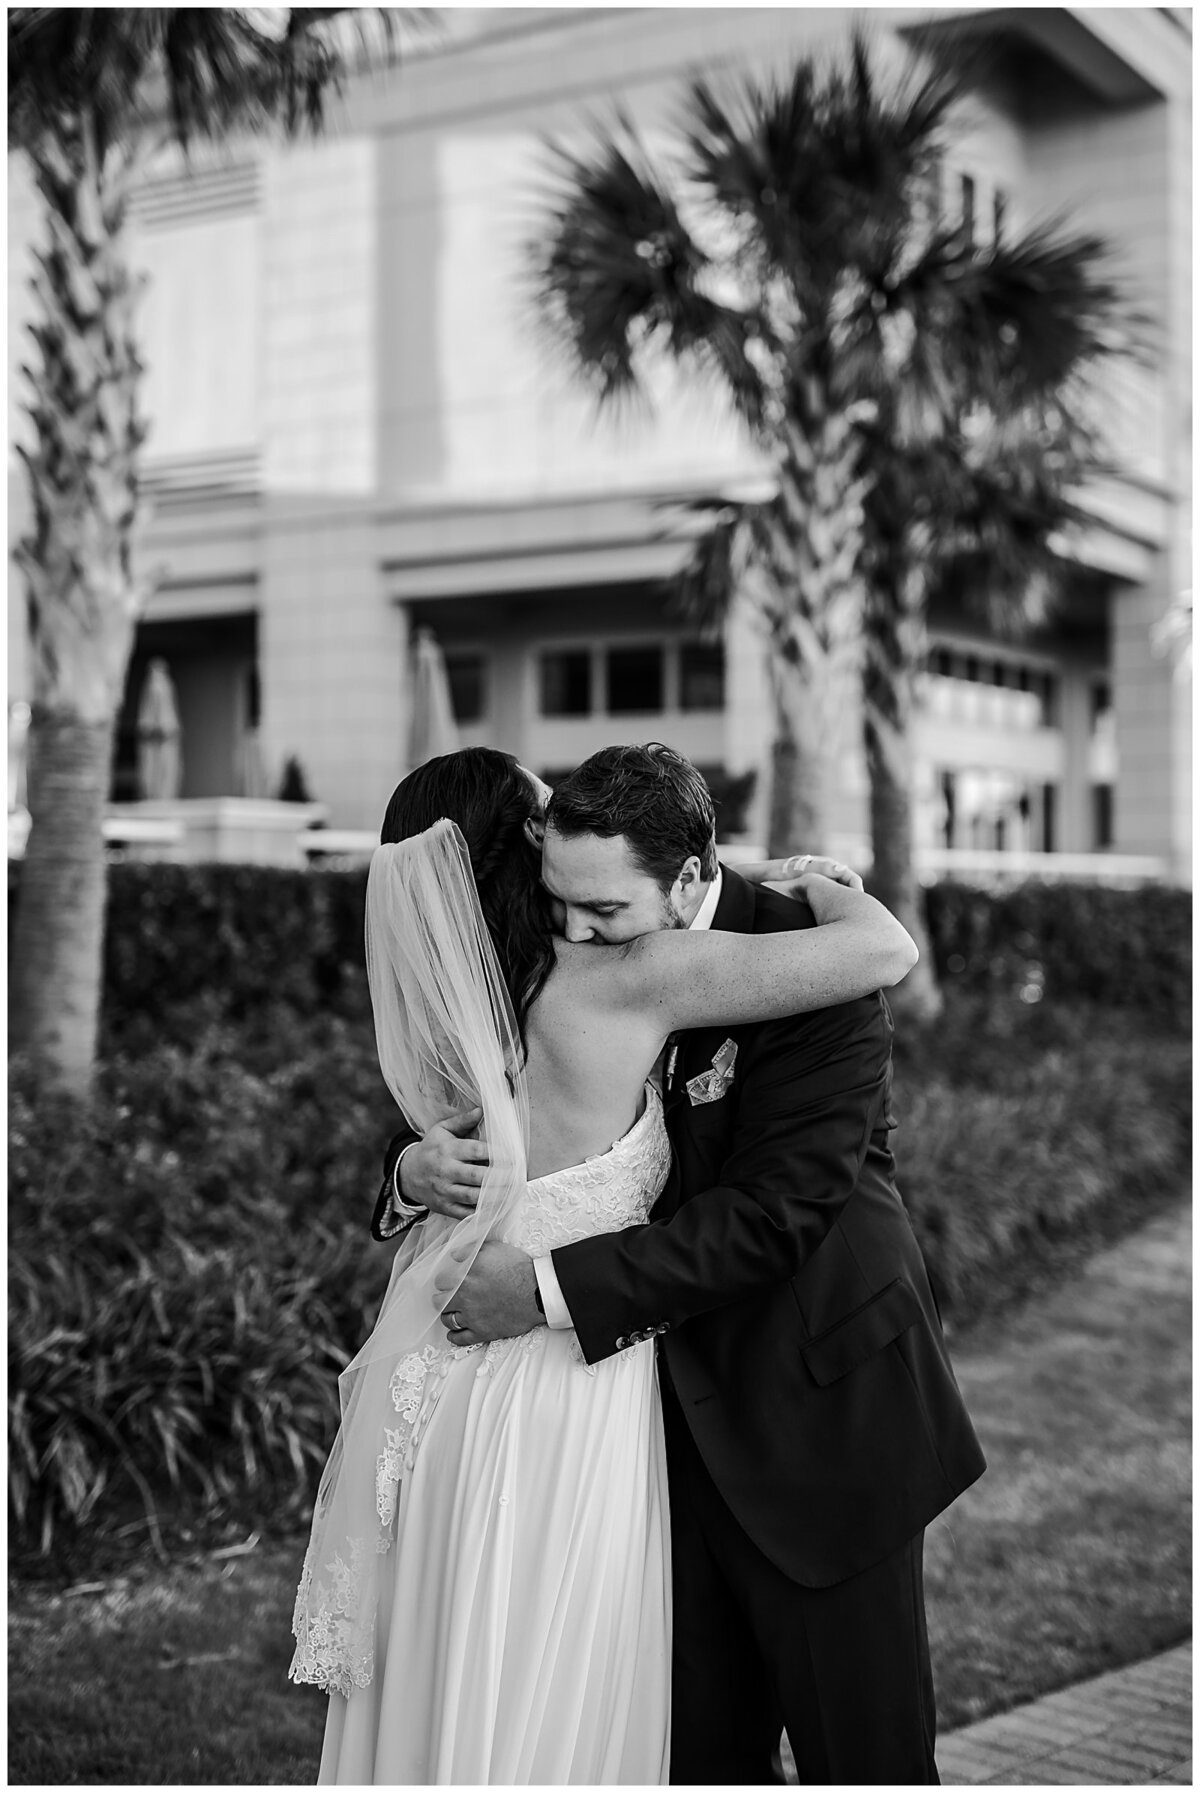 meghan lupyan hampton roads wedding photographer249